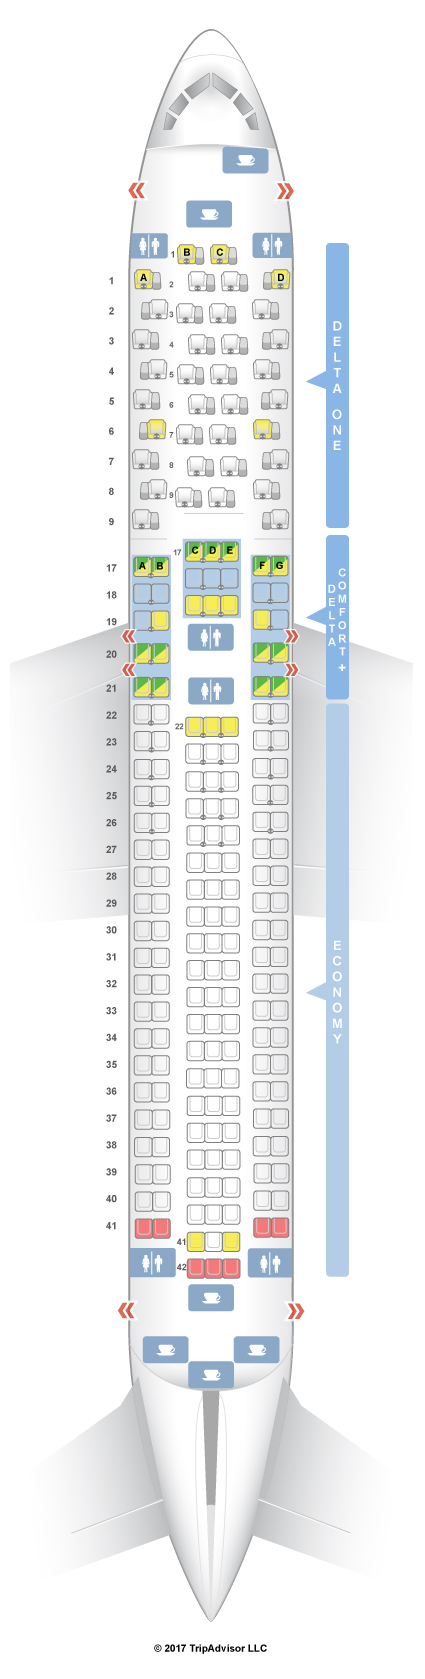 50+ Great Boeing 757 200 Seat Map Delta - queen bed size